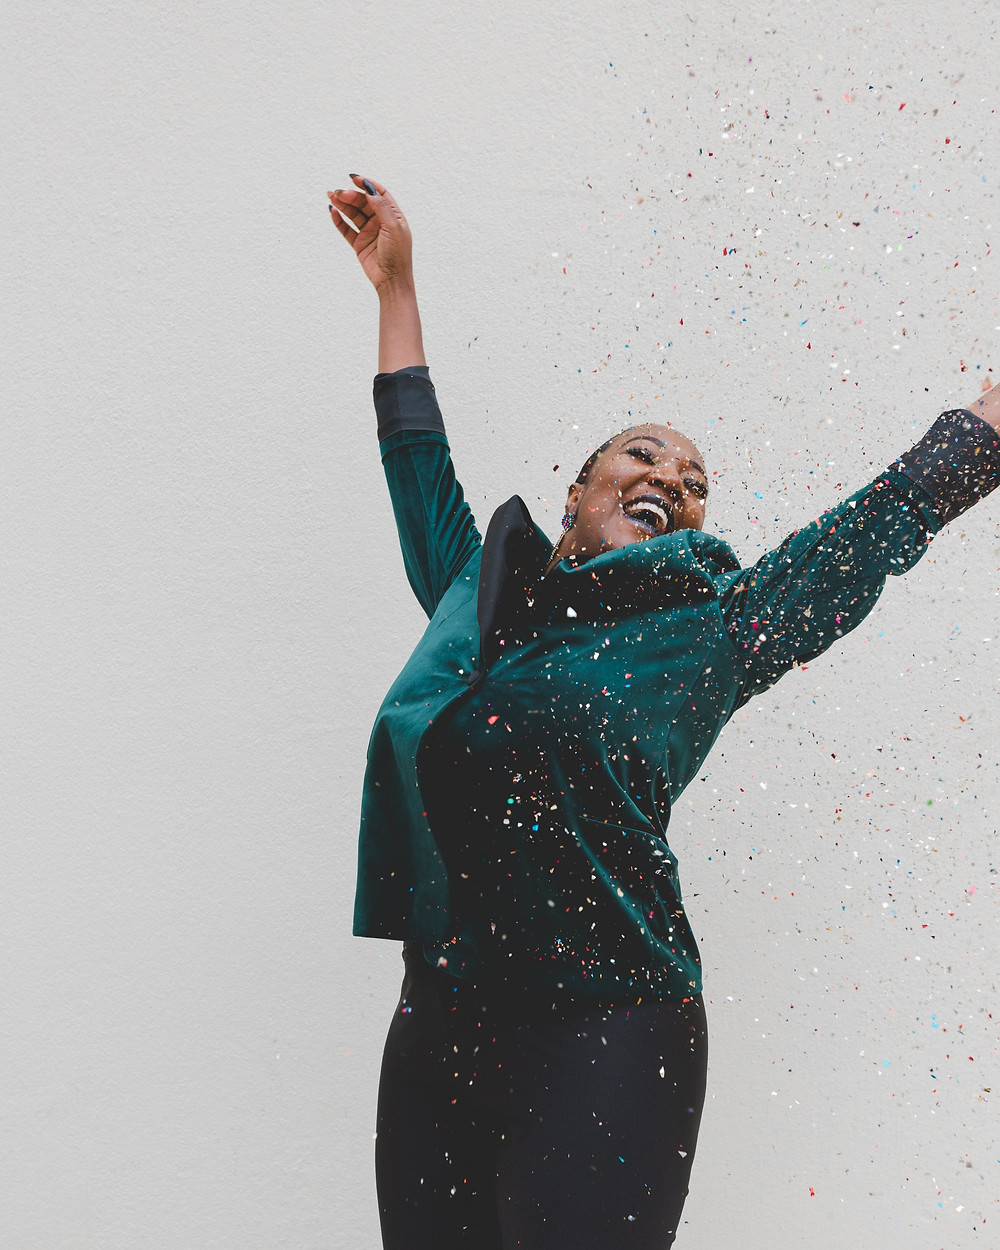 A Black woman dressed in an emerald green blazer and black pants jumps up with a smile on her face and confetti falling down.